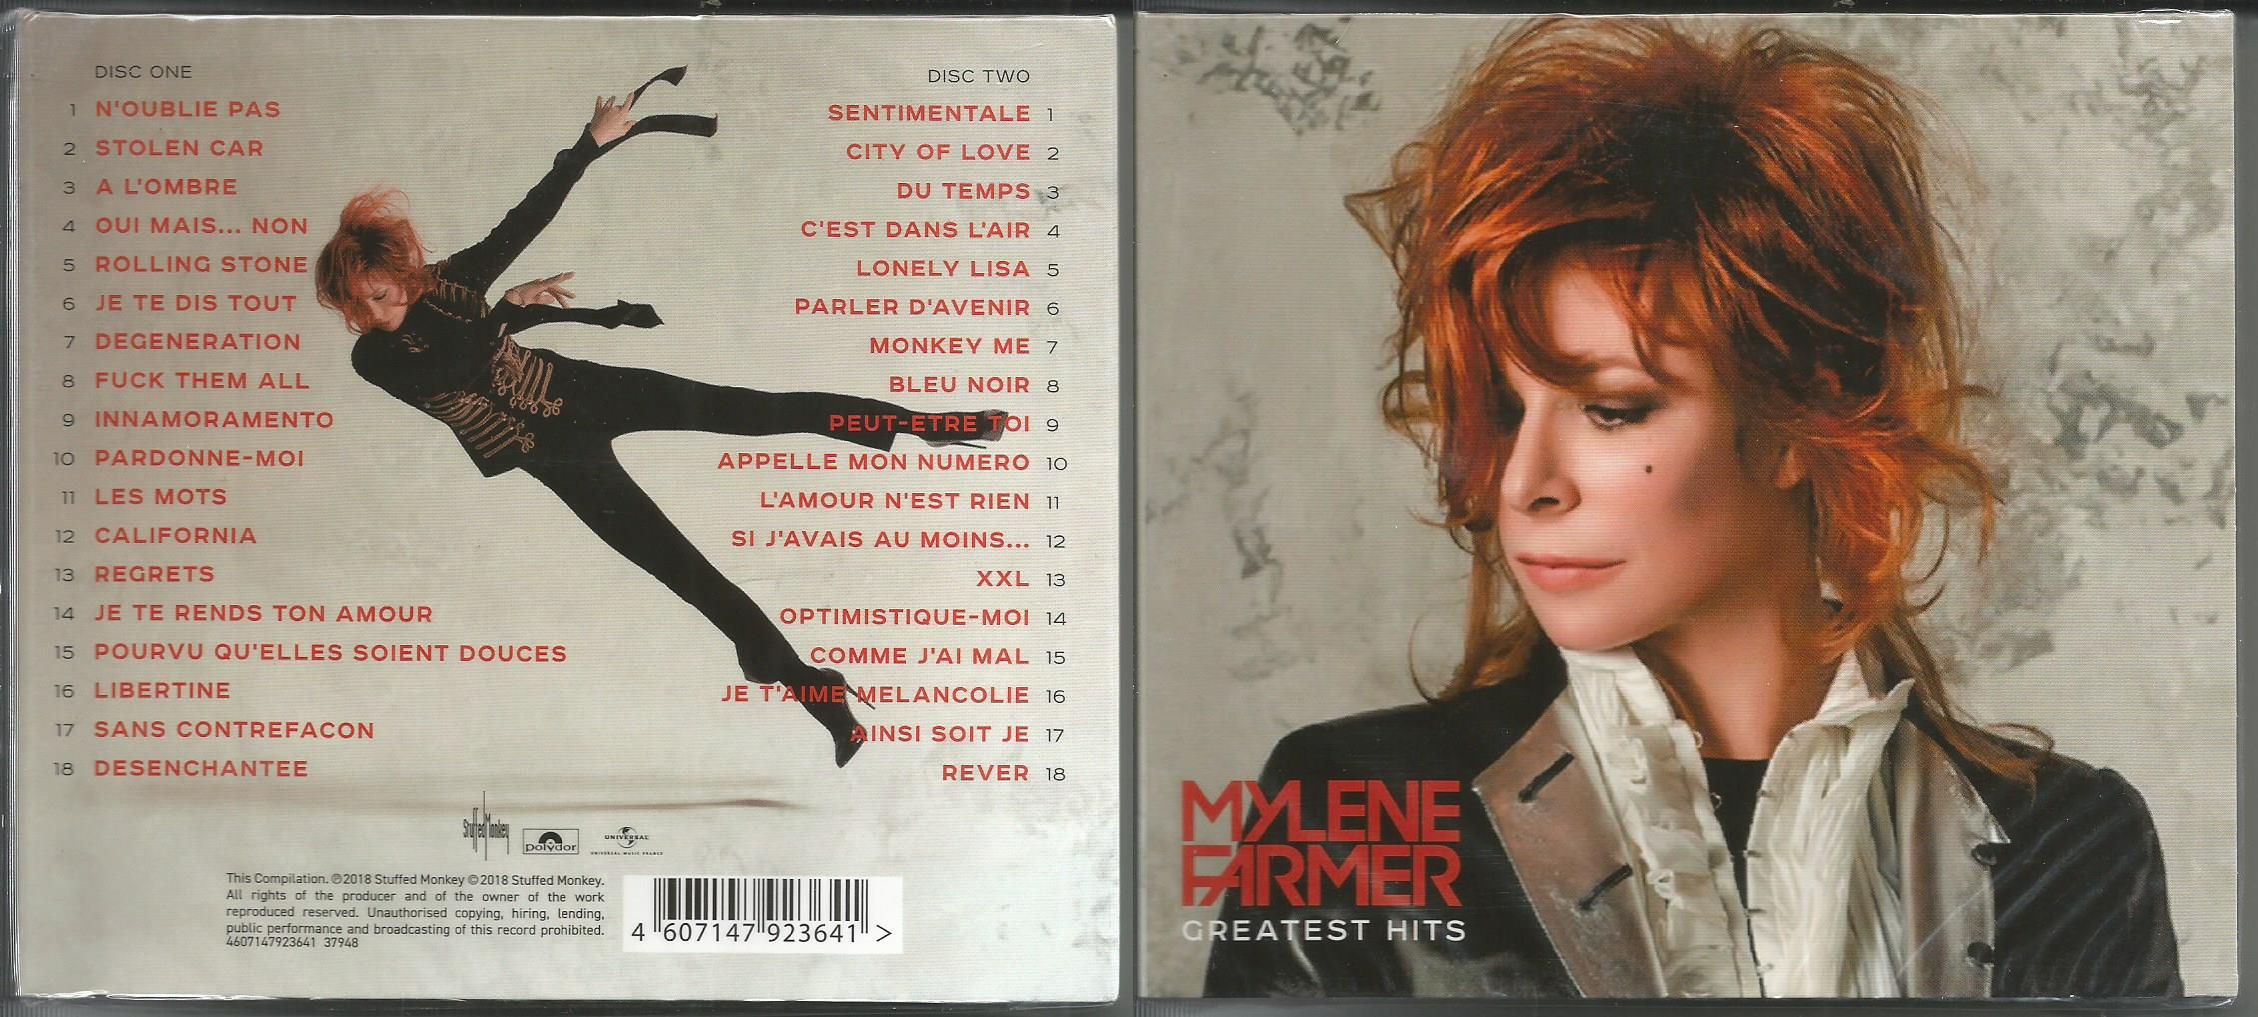 farmer, mylene greatest hits 2018 (36track russia only 2016 compilation, triple foldout digipack, sealed)